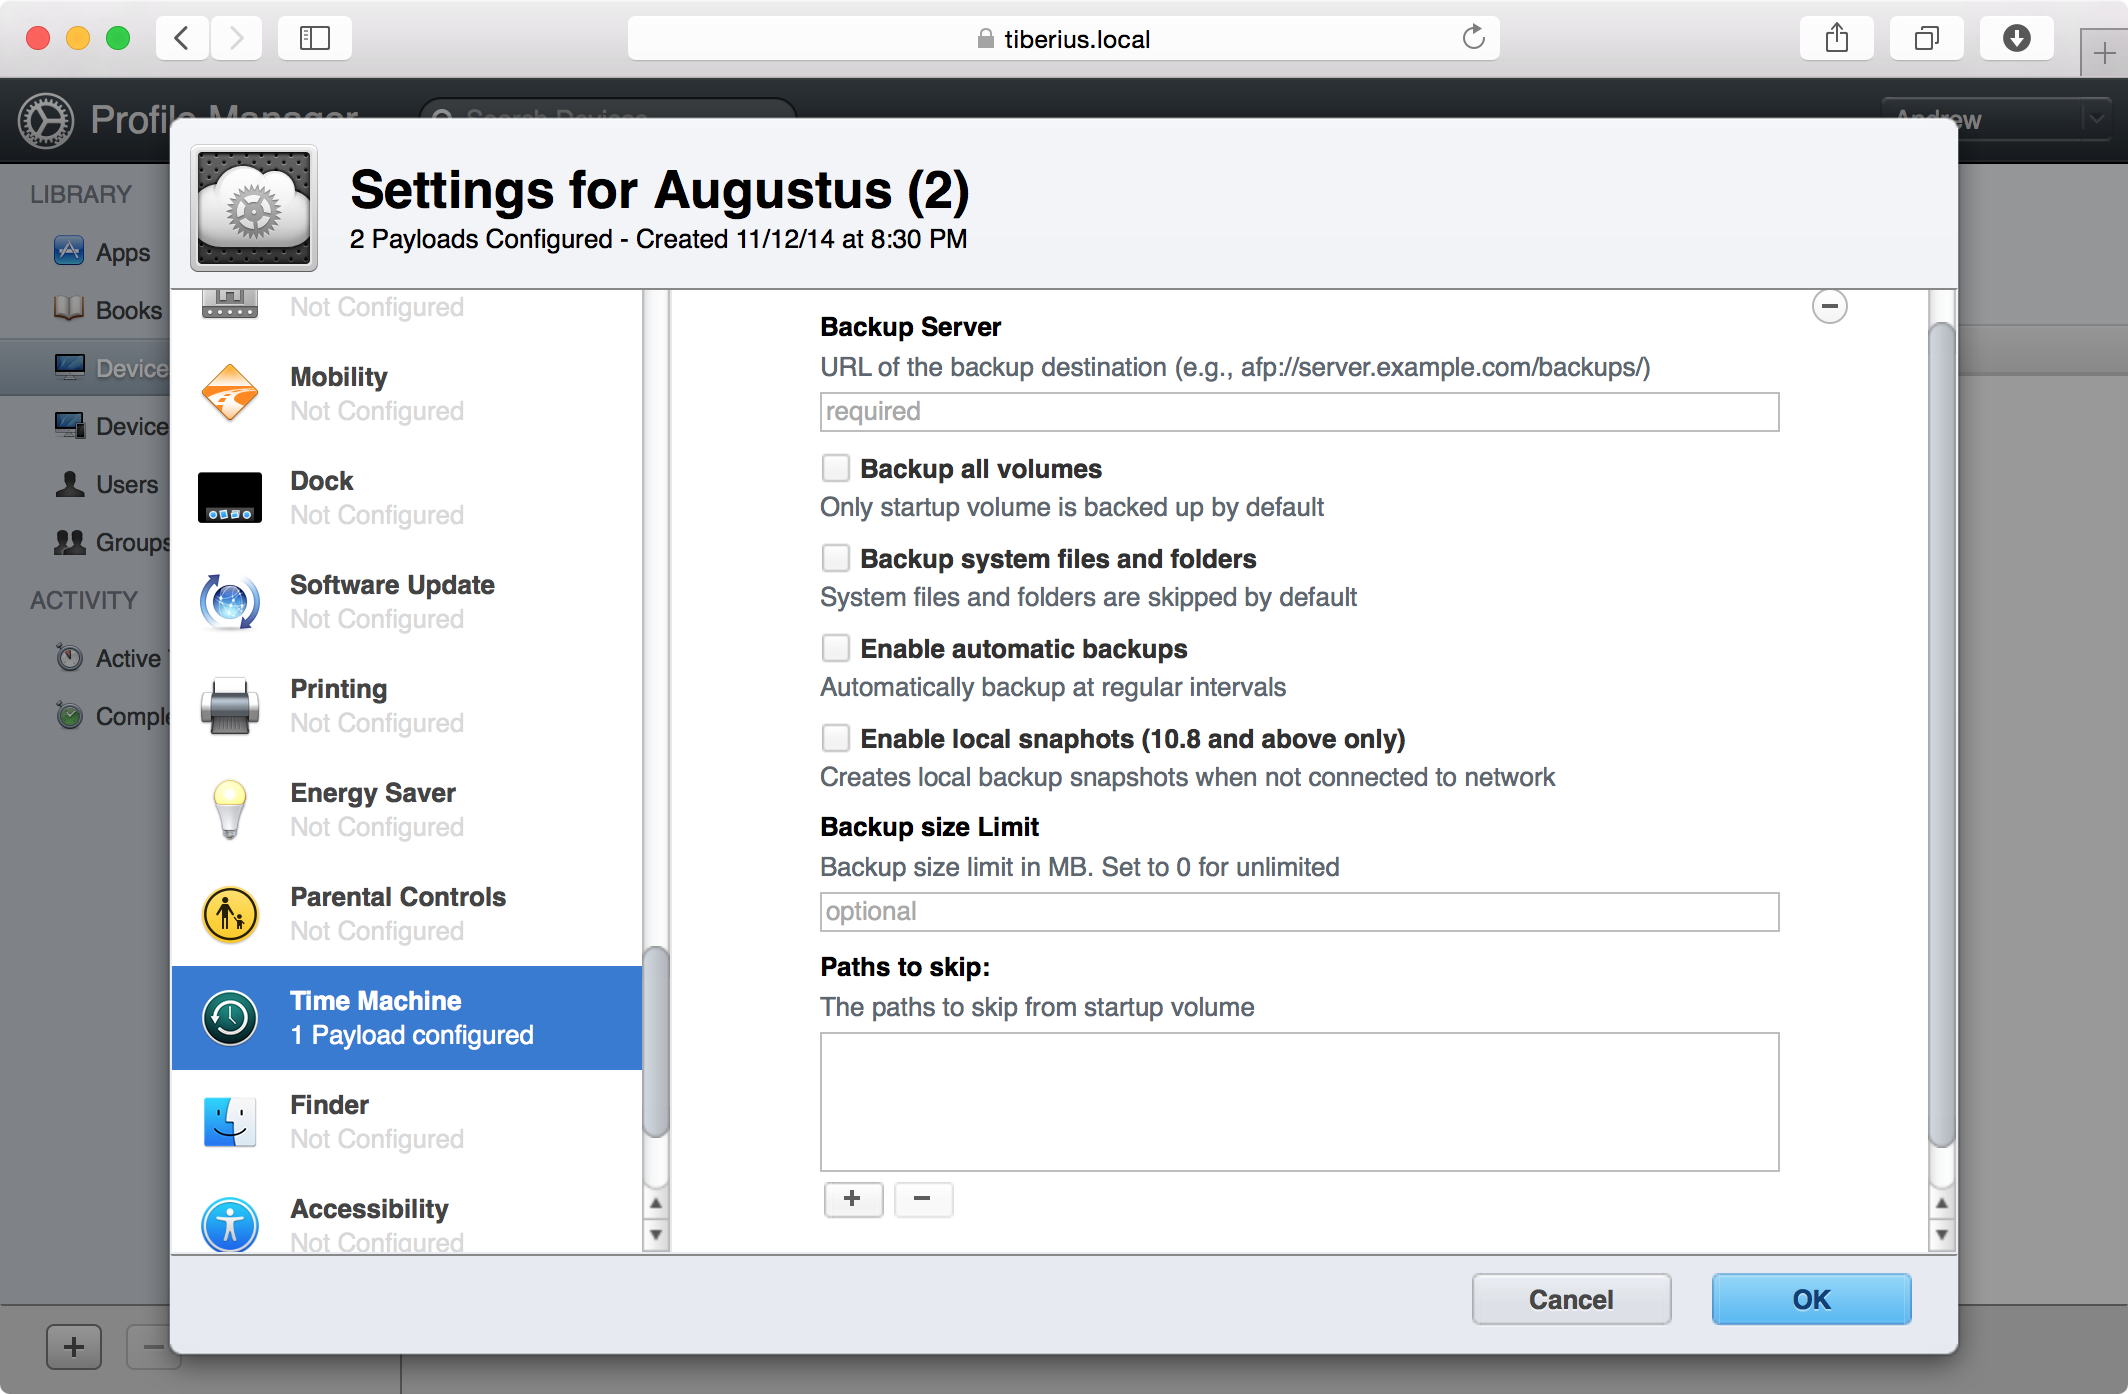 If you need more flexible backups, consider using Profile Manager rather than the Time Machine service itself.